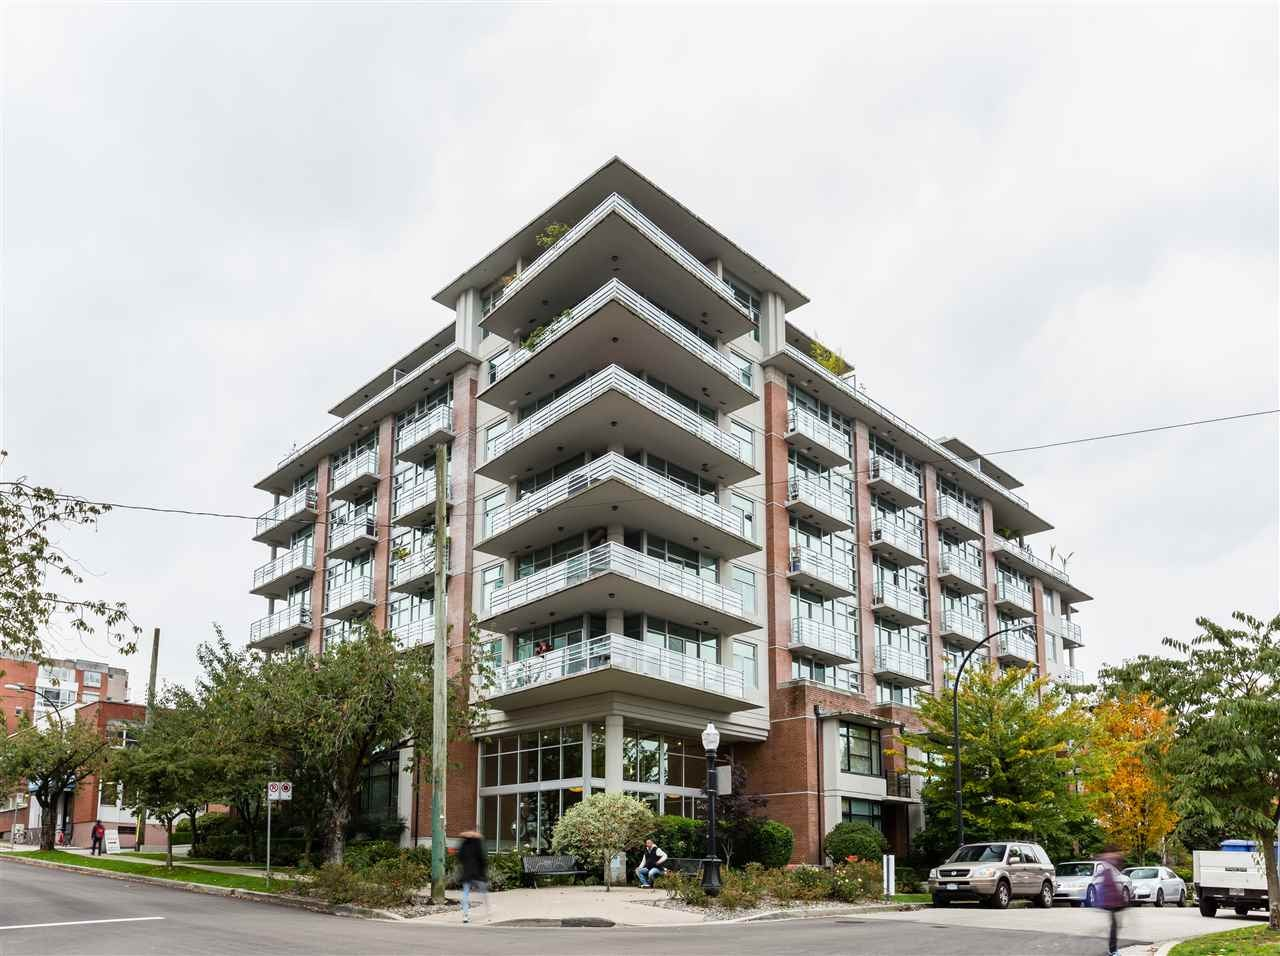 309 298 E 11TH AVENUE - Mount Pleasant VE Apartment/Condo for sale, 1 Bedroom (R2567914) - #1